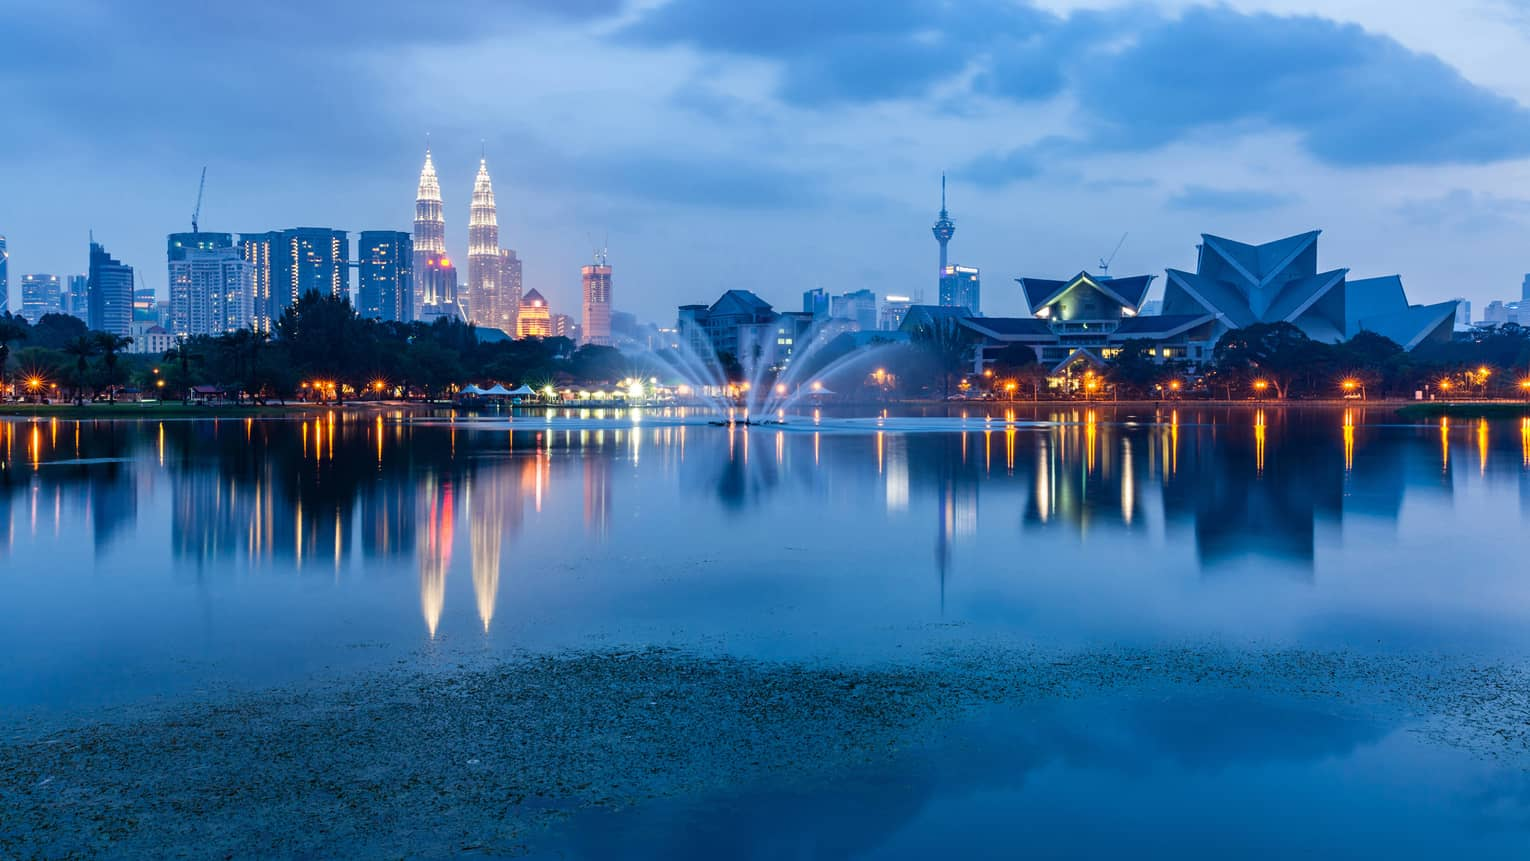 View of the city of Kuala Lumpur at dusk reflecting on the river